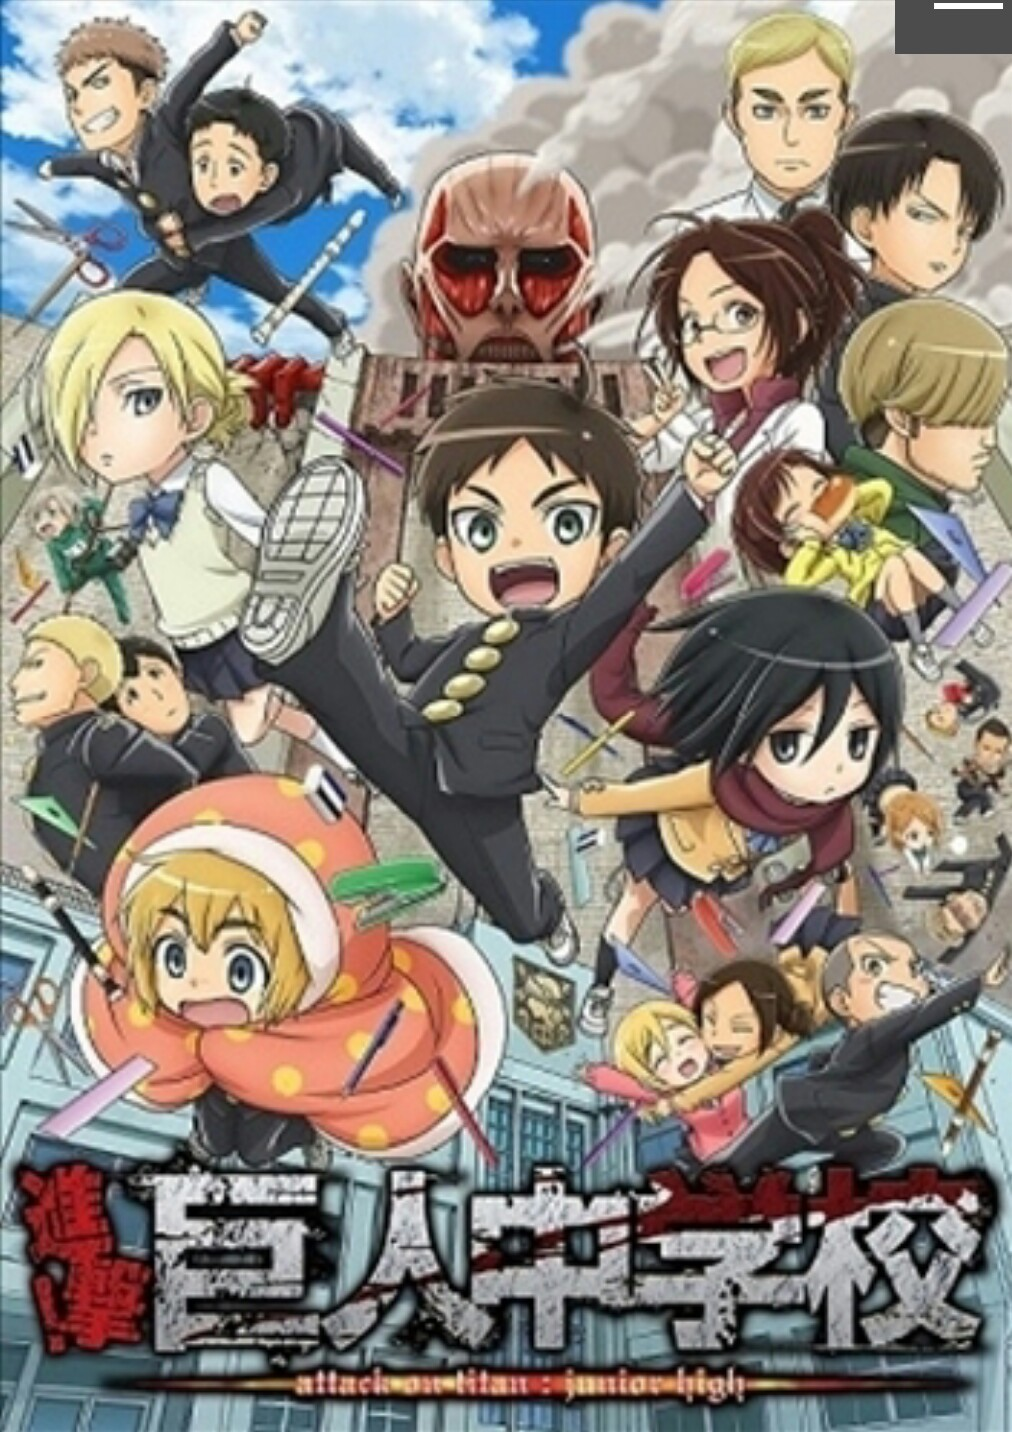 https://static.tvtropes.org/pmwiki/pub/images/attack_on_titan_junior_high.jpg